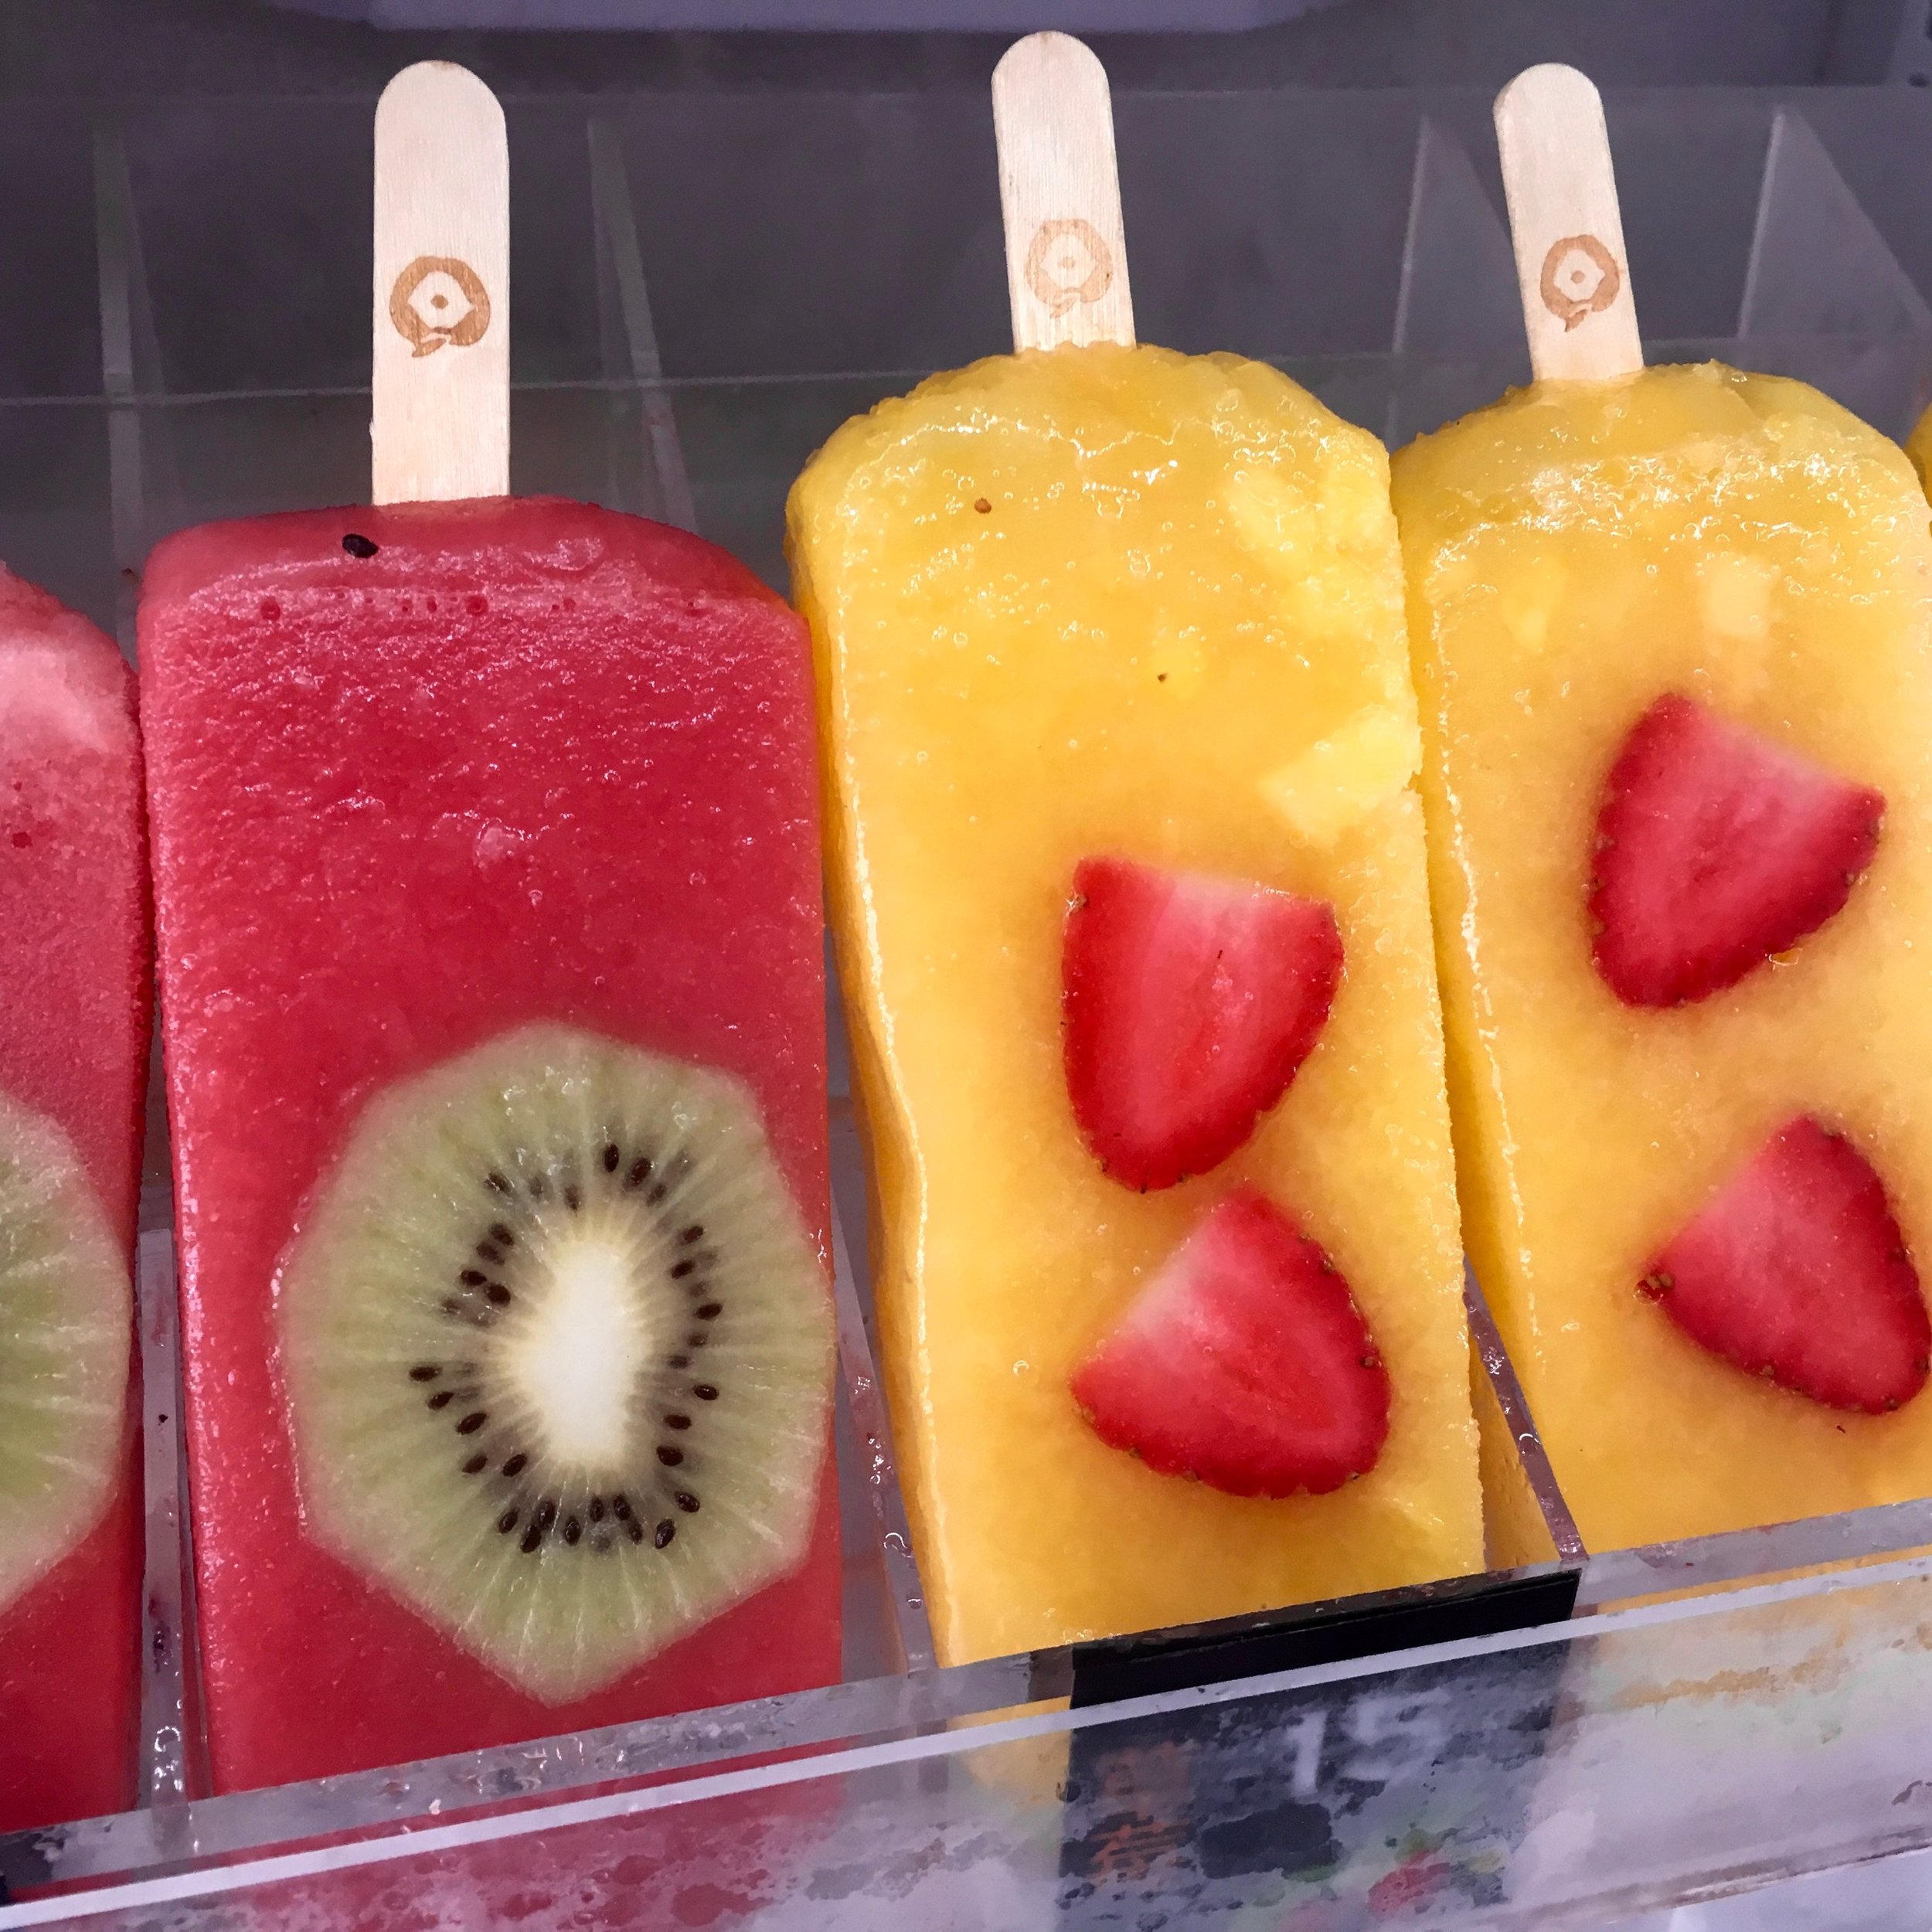 Don't these fruity ice pops look refreshing?